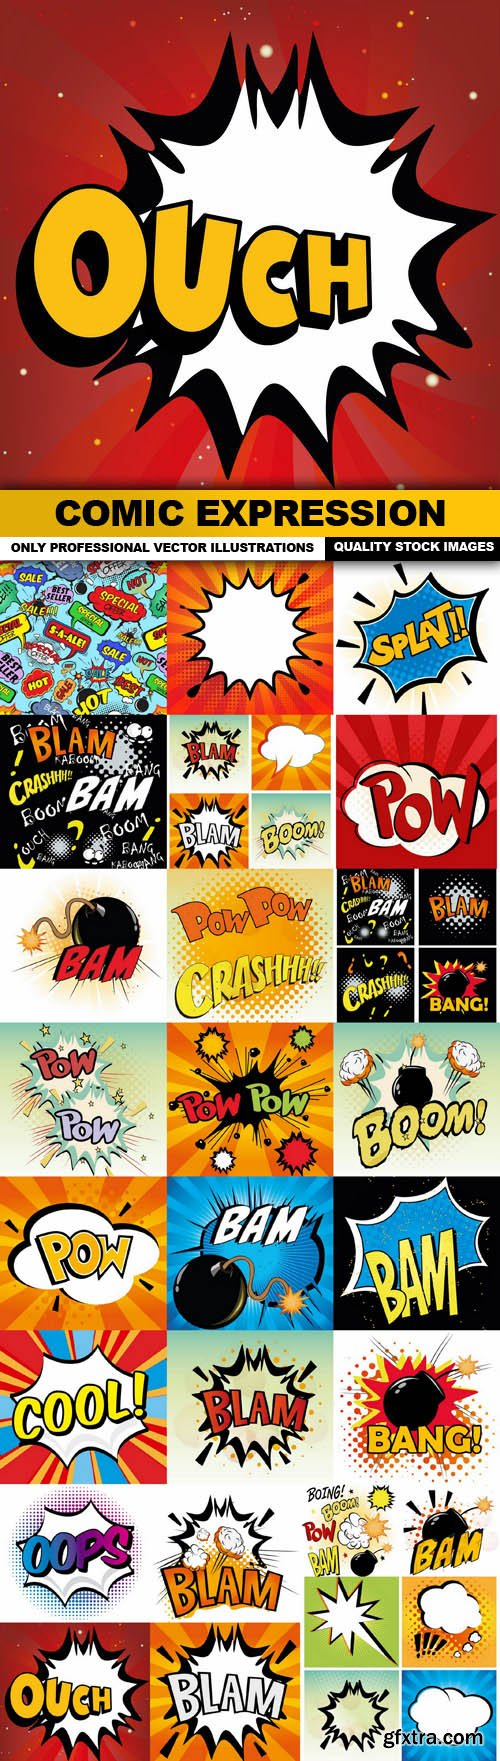 Comic Expression - 25 Vector